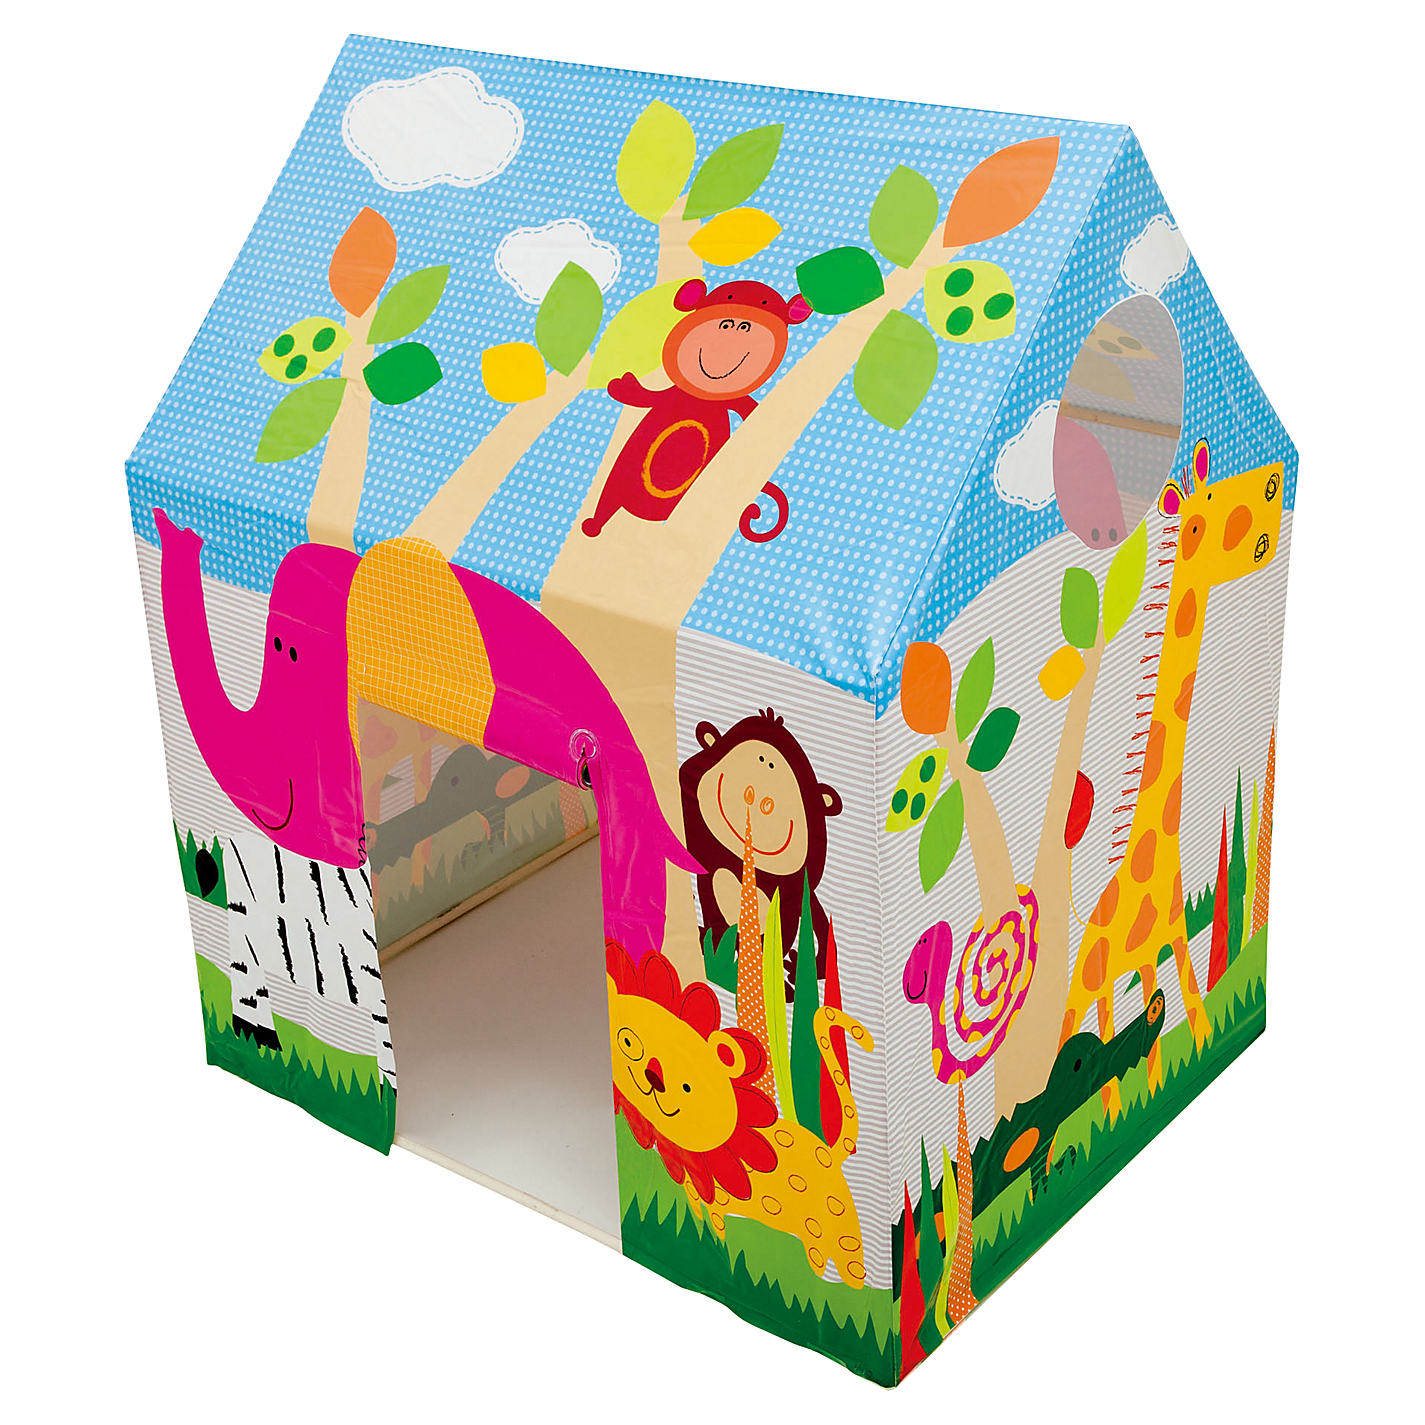 Buy Jungle Play Tent Online at johnlewis.com ...  sc 1 st  John Lewis & Buy Jungle Play Tent | John Lewis